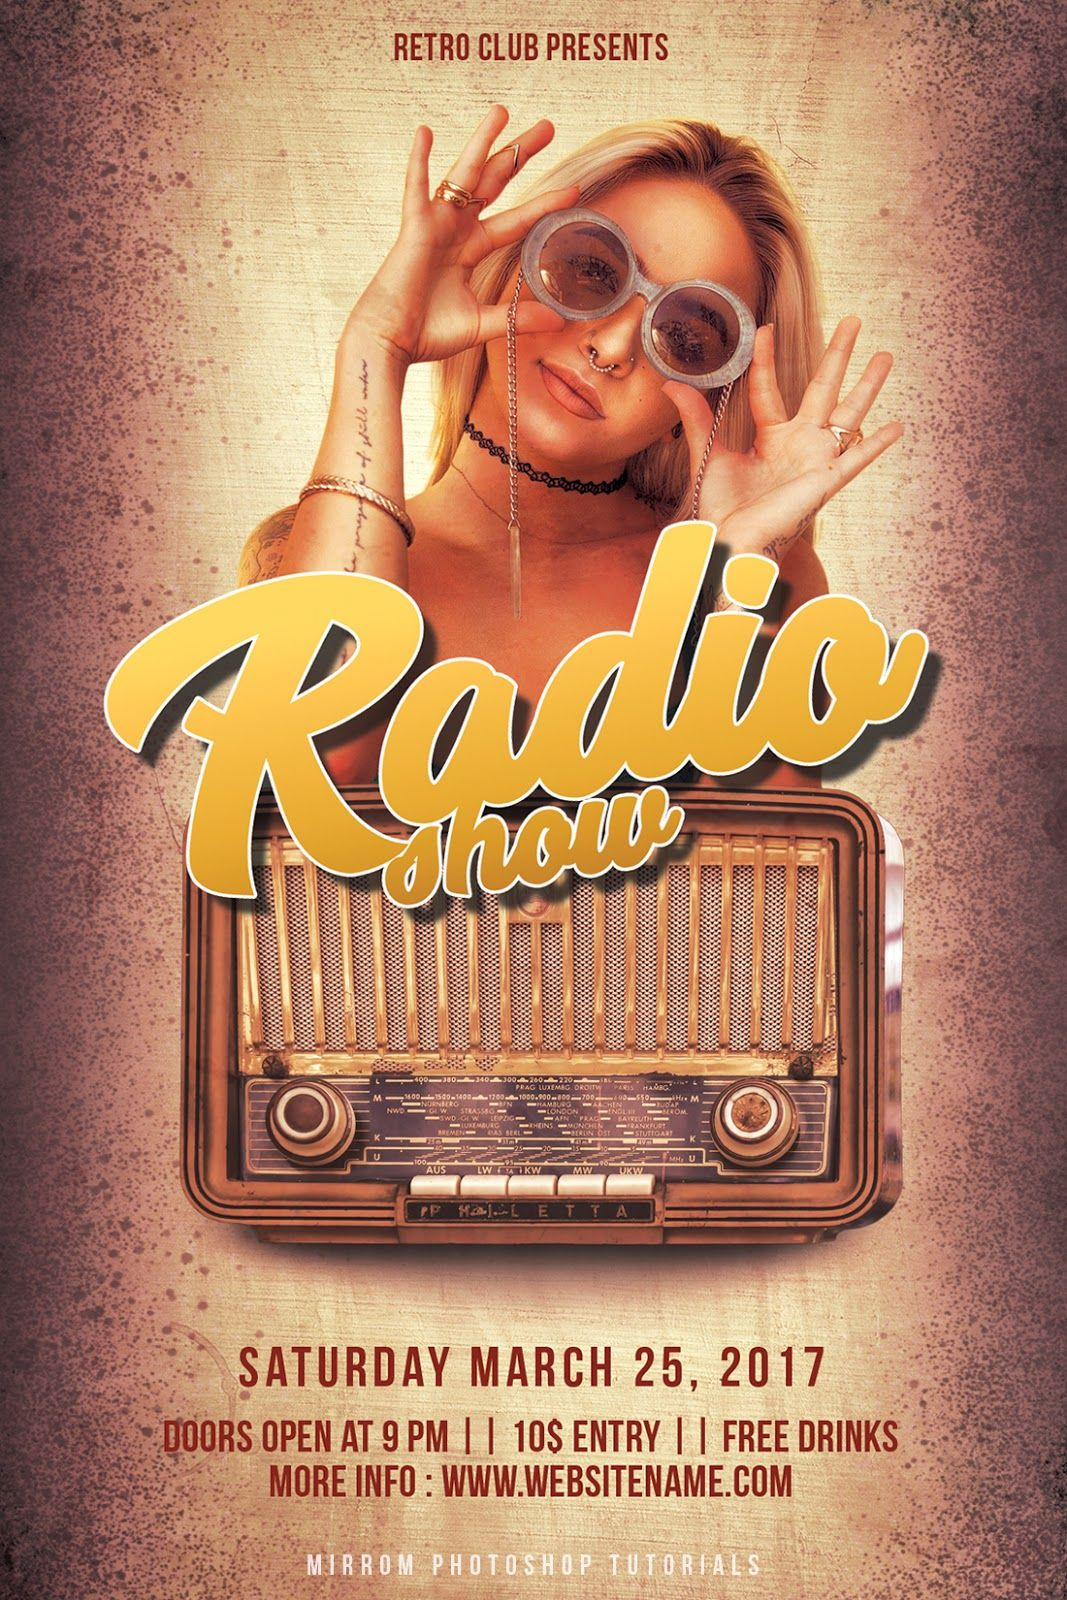 Create a retro style radio show flyer in photoshop party flyer this tutorial will help you to create a party flyer retro style in photoshop baditri Choice Image